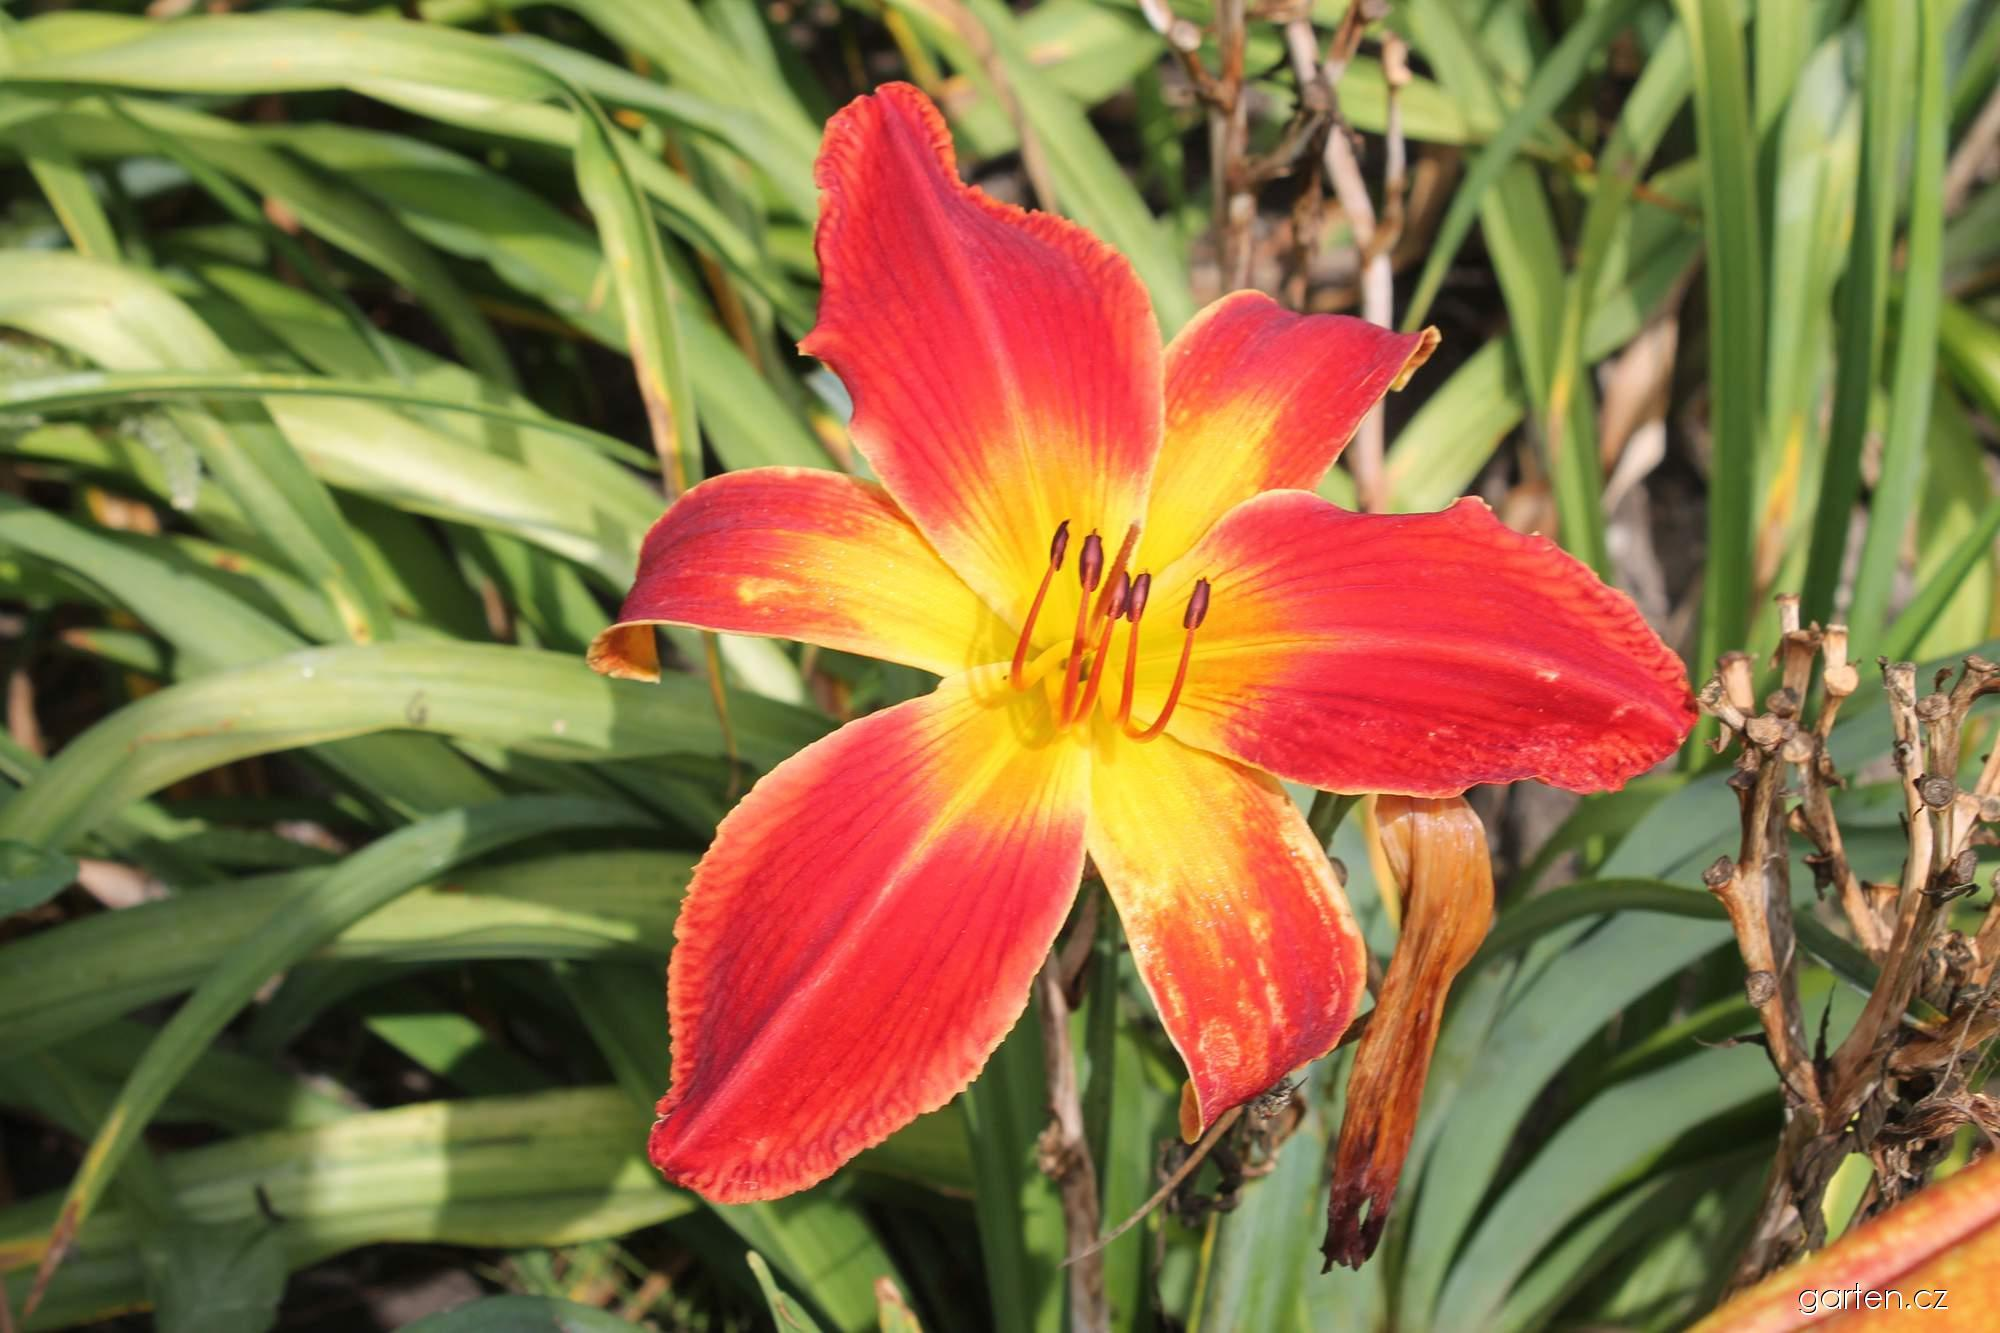 Denivka All American Chief (Hemerocallis hybrida)